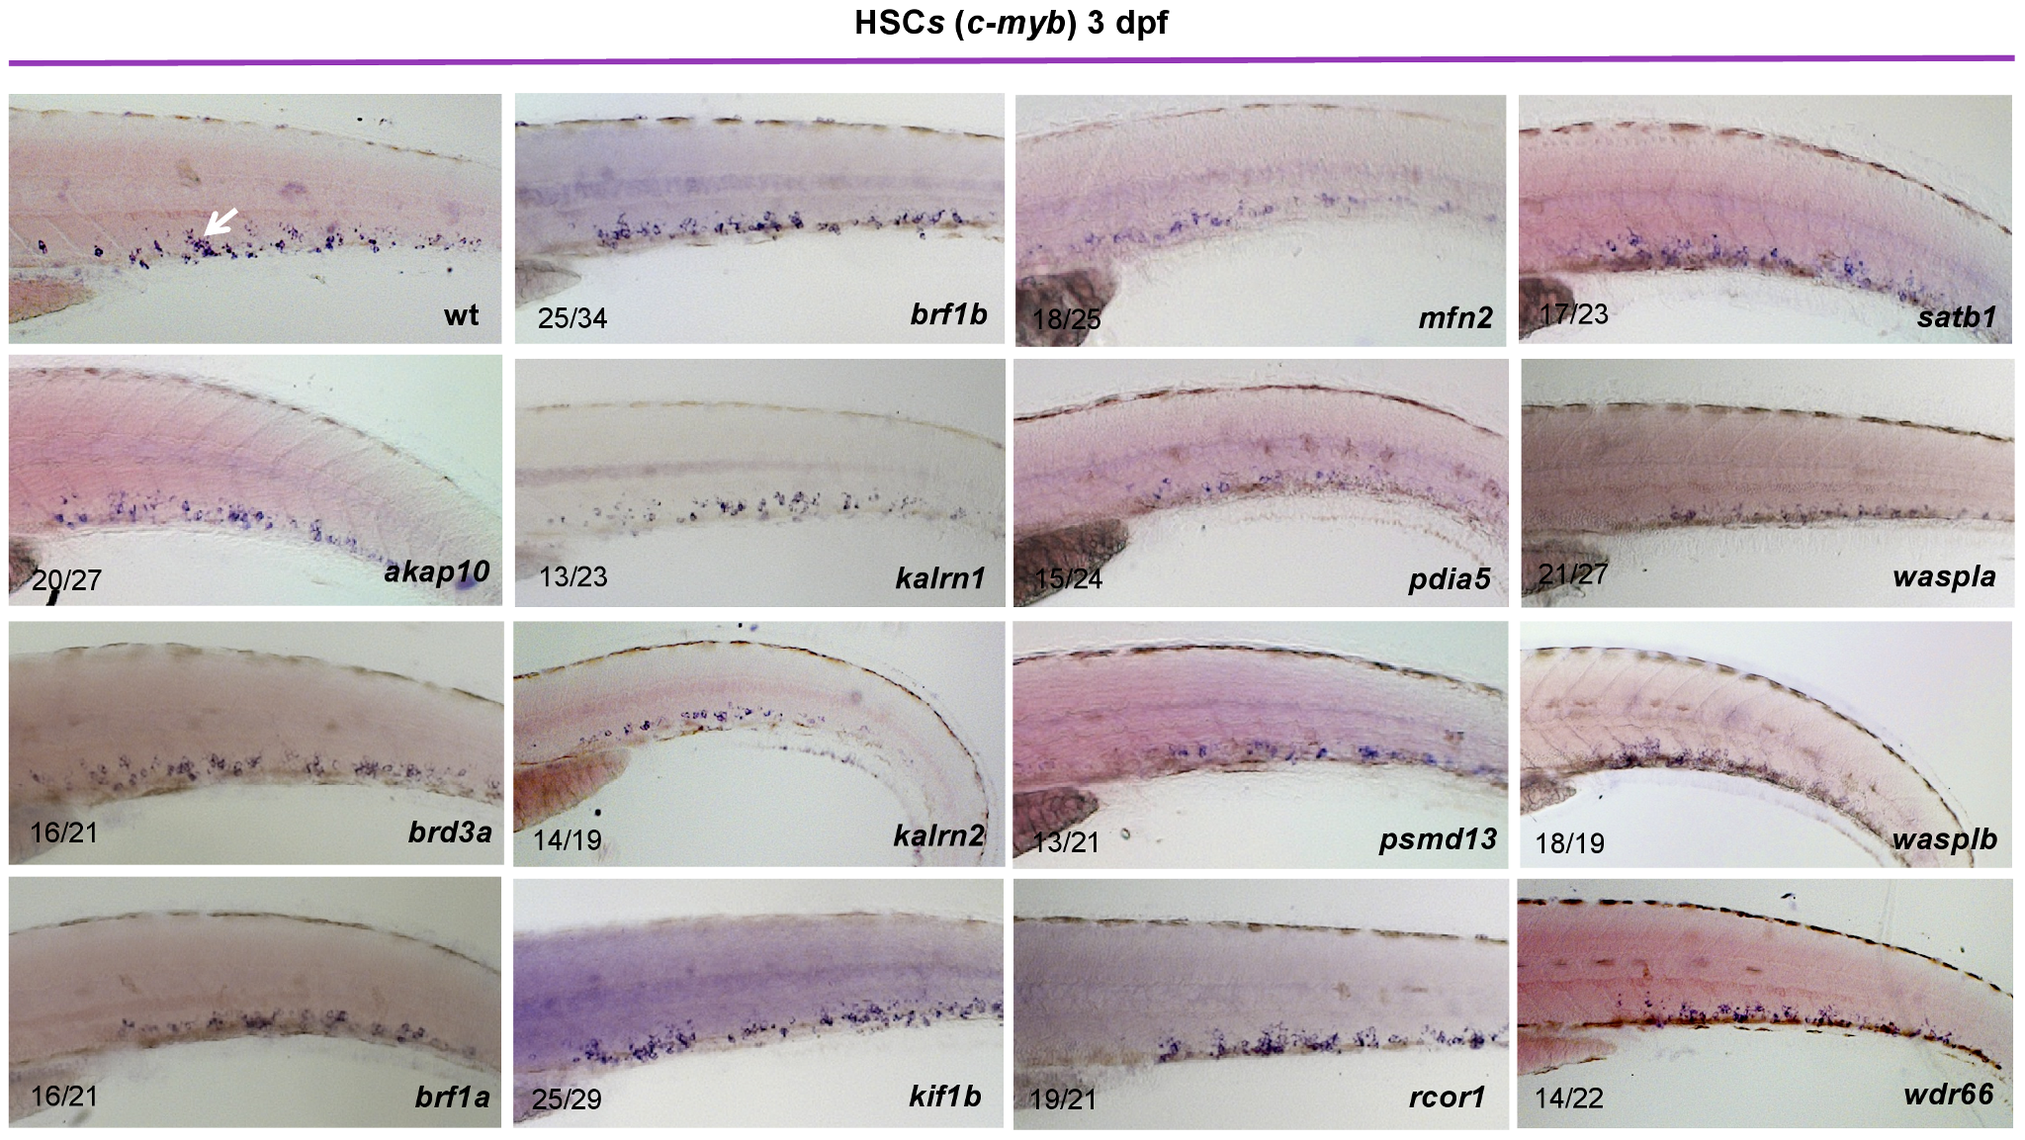 Characterization of HSCs in candidate gene depleted embryos.